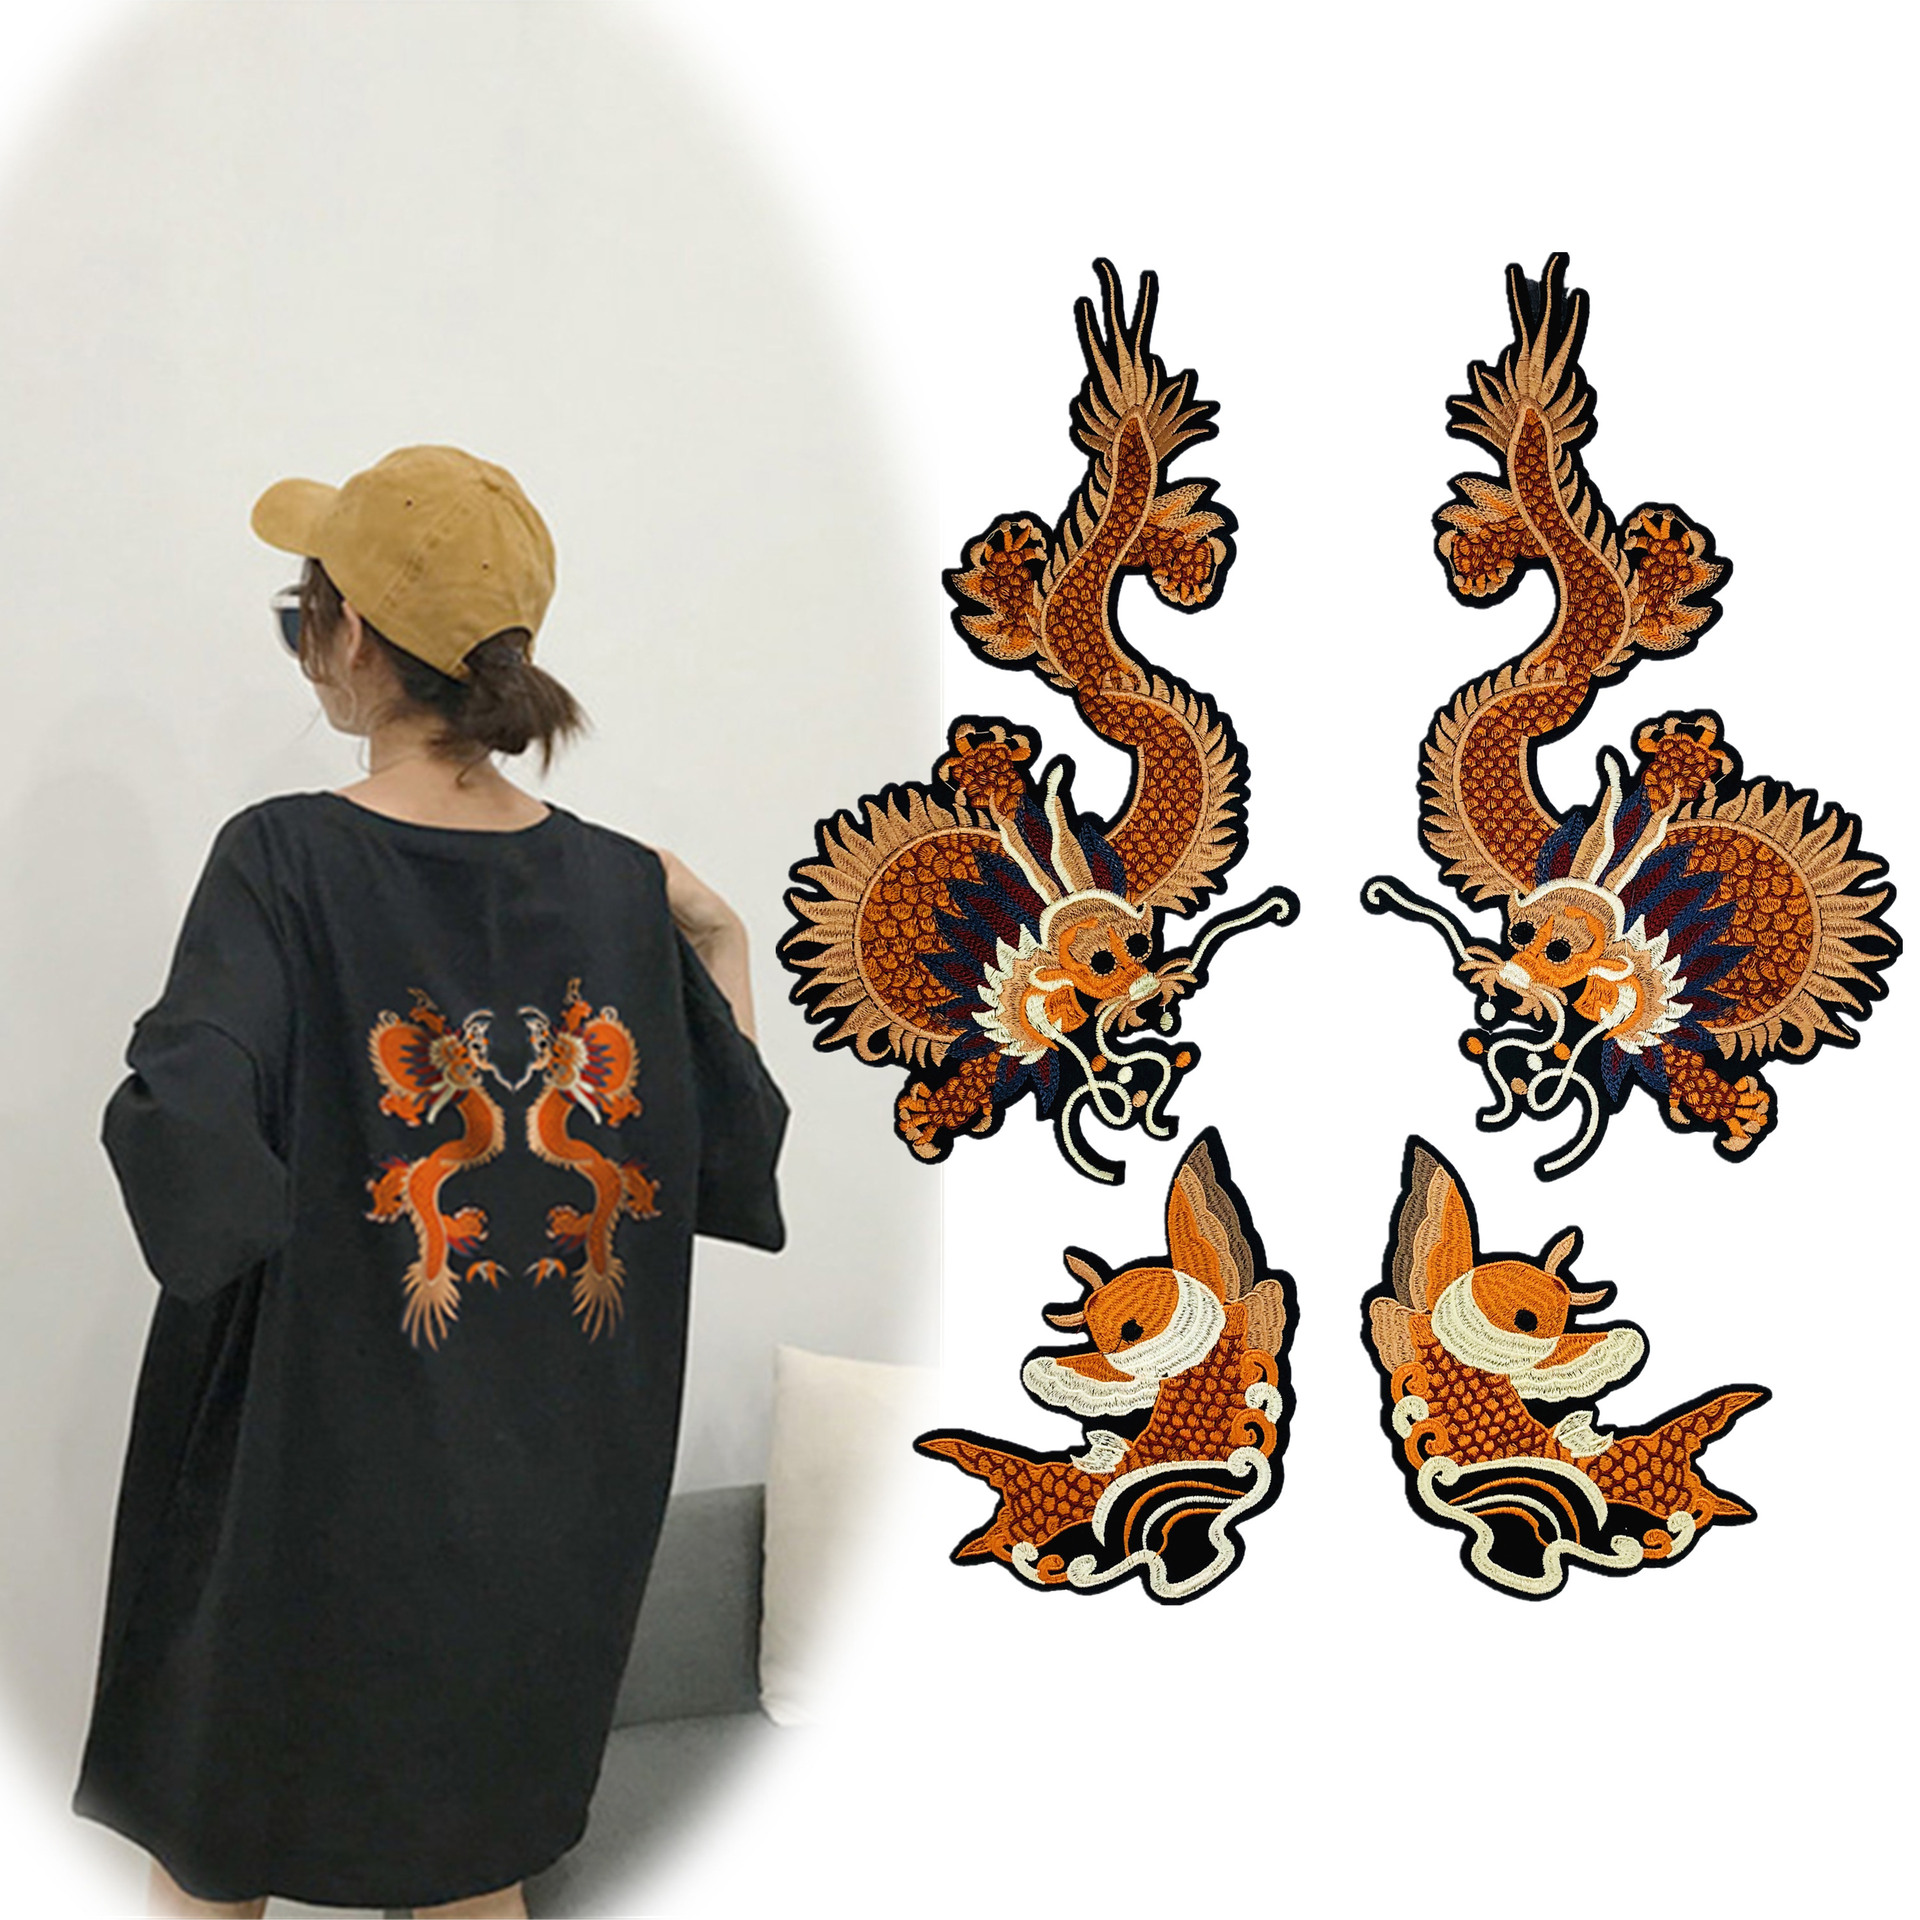 Iron On Set Of Dragon Embroidery Patches 4pcs Small Patches Apply To Handmade T-shirt 、Dress、Jacket